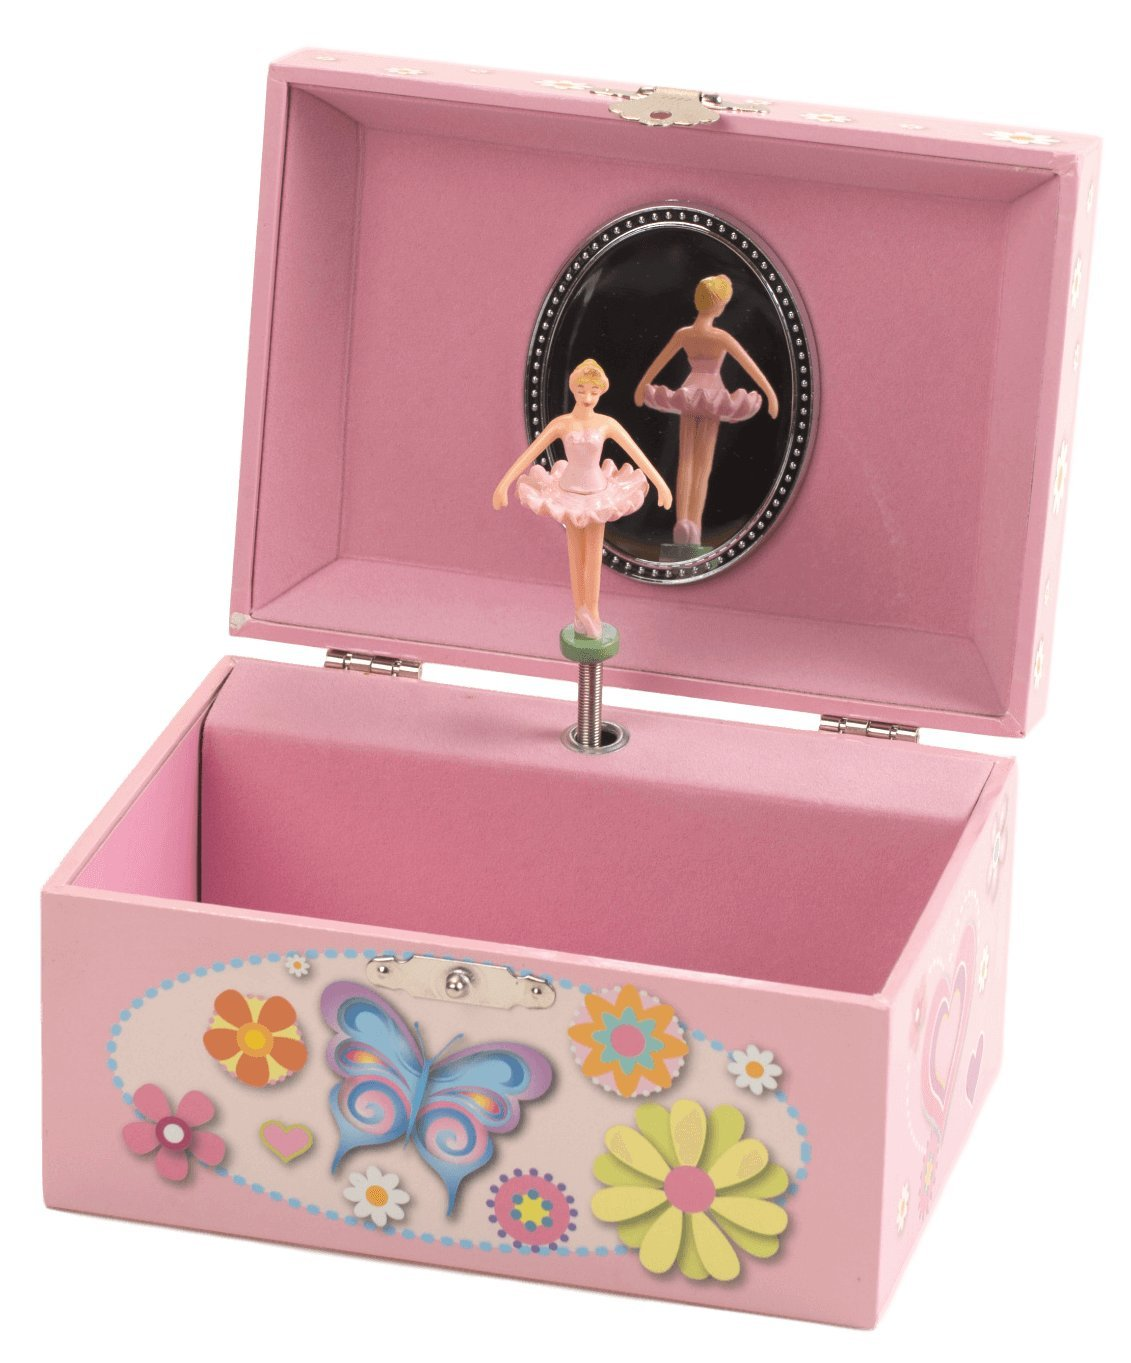 The San Francisco Music Box Company Butterfly Keepsake Musical Jewelry Box